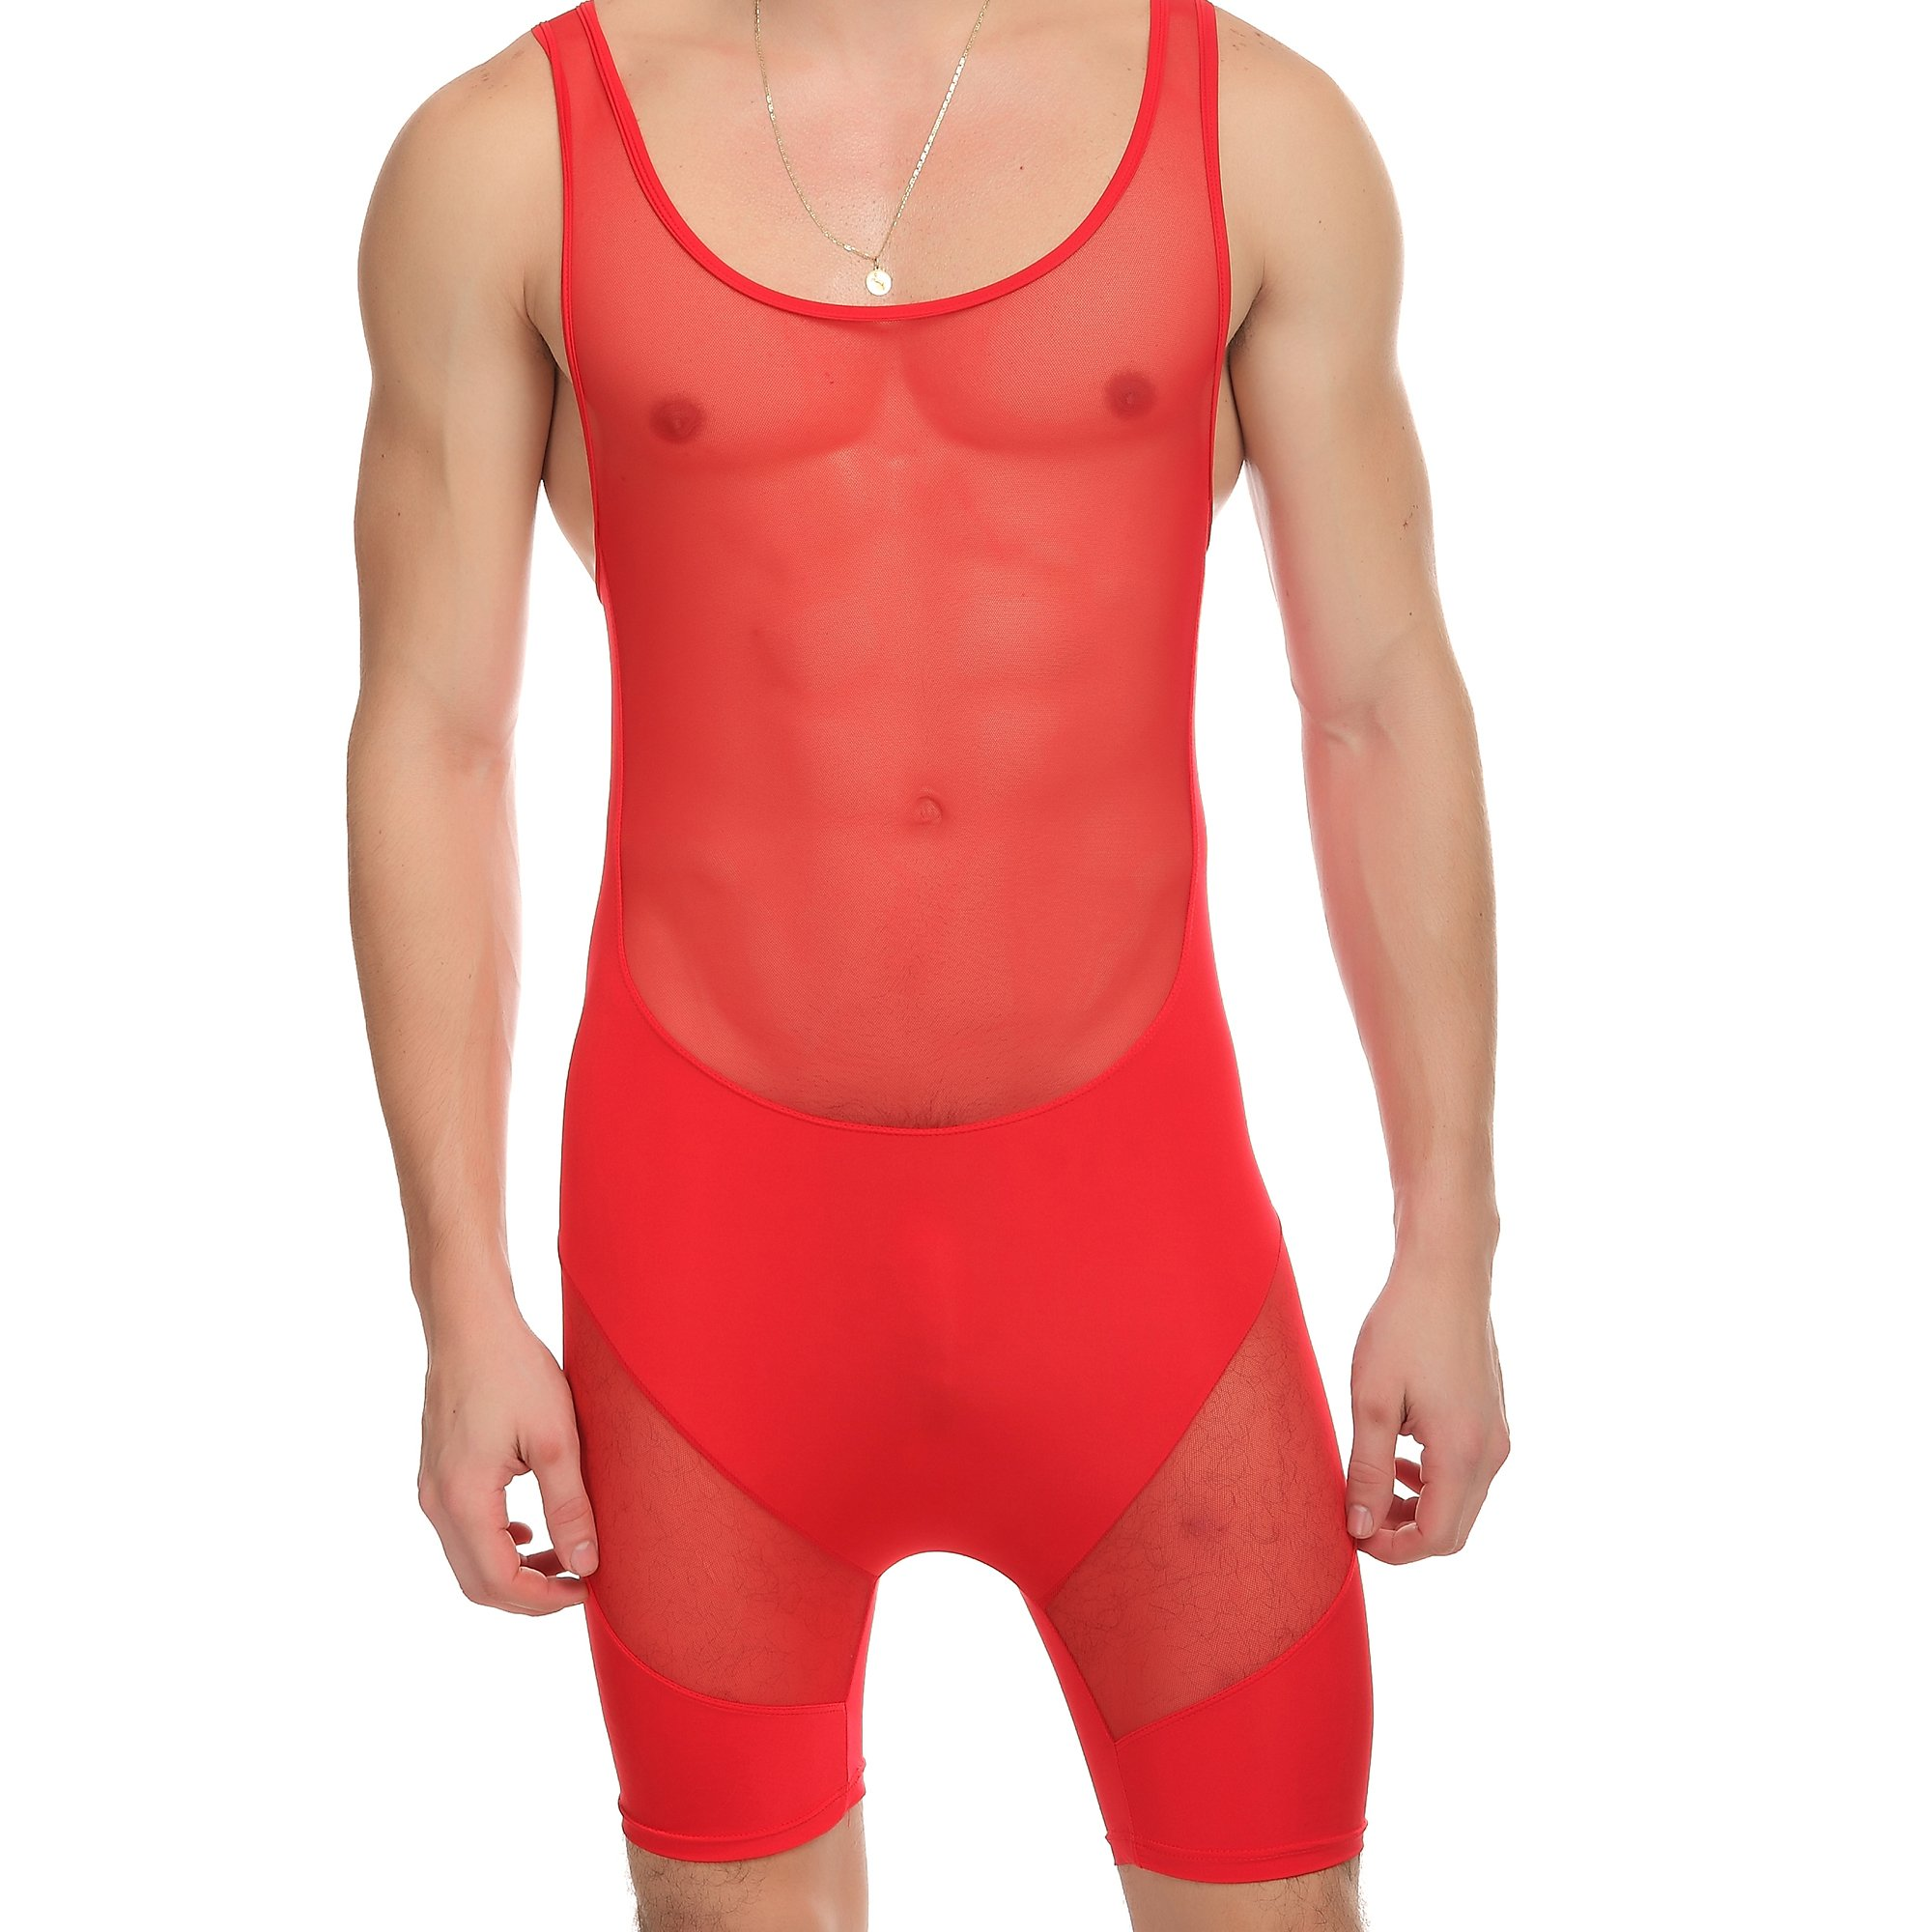 ONEFIT Mens Sheer Mesh Wrestling Singlet Bodysuit Leotards Underwear Red L